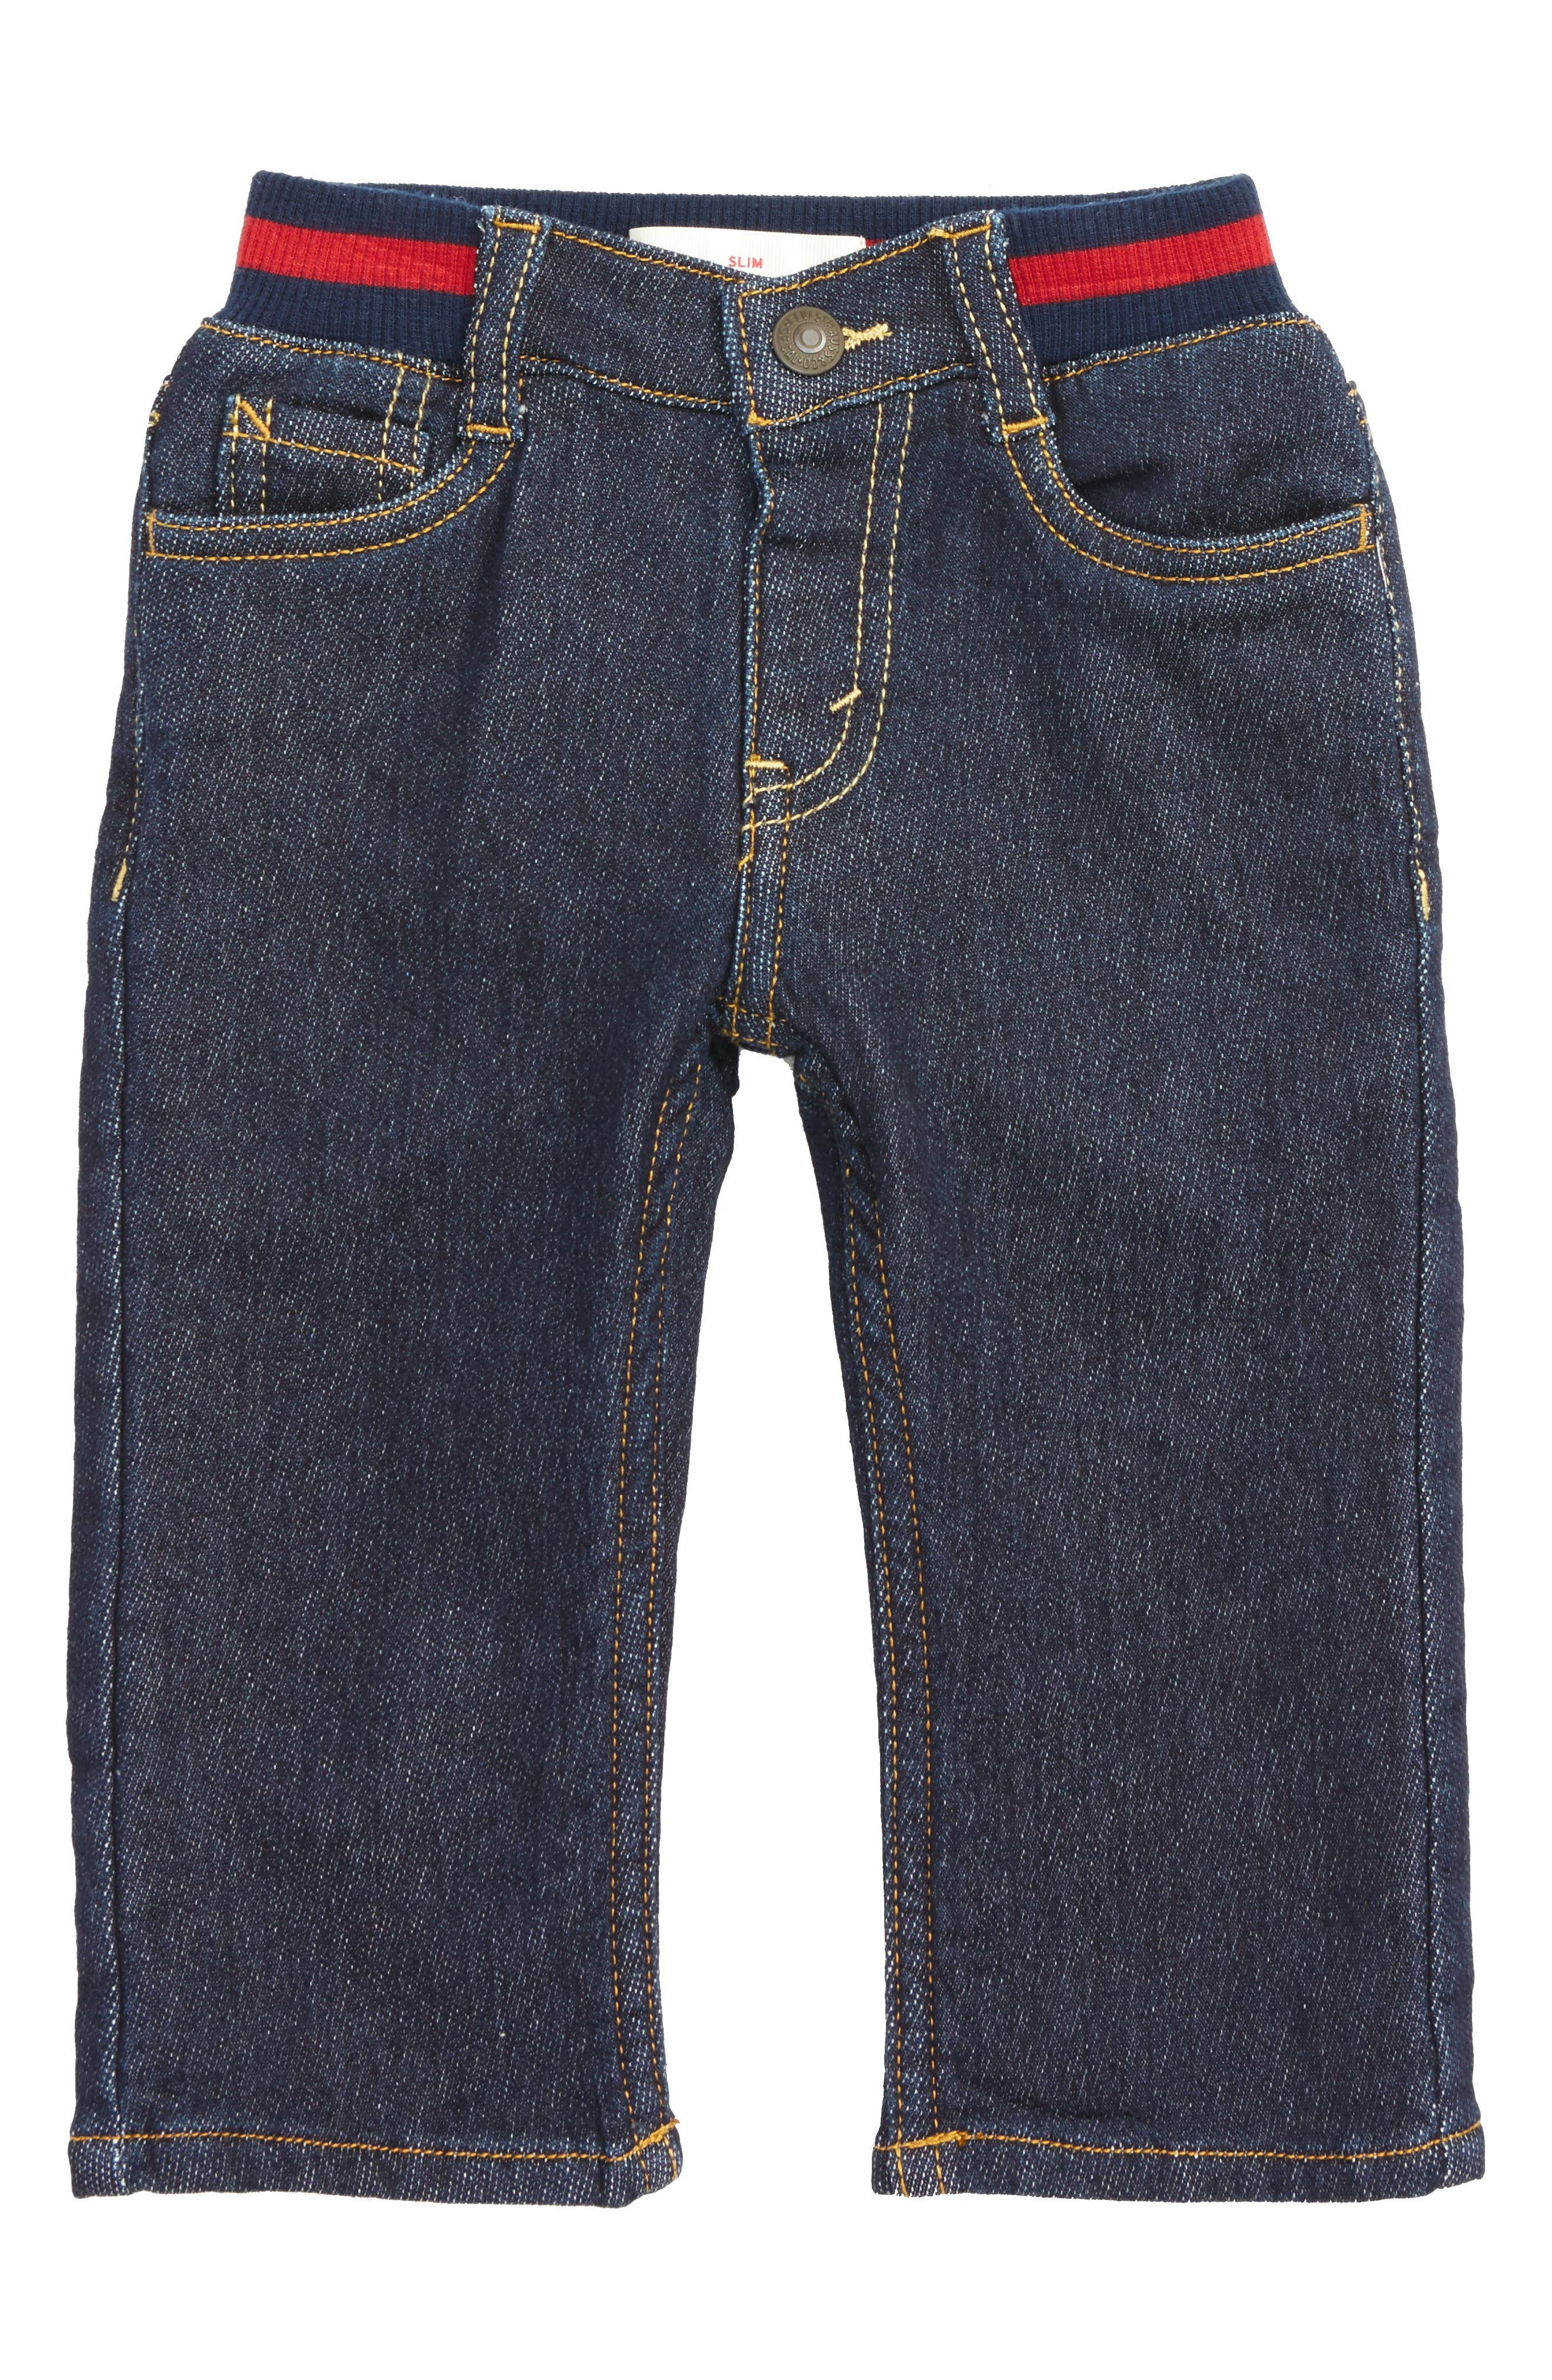 Alternate Image 1 Selected - Levi's® Bayview Jeans (Hermosa) (Baby Boys)